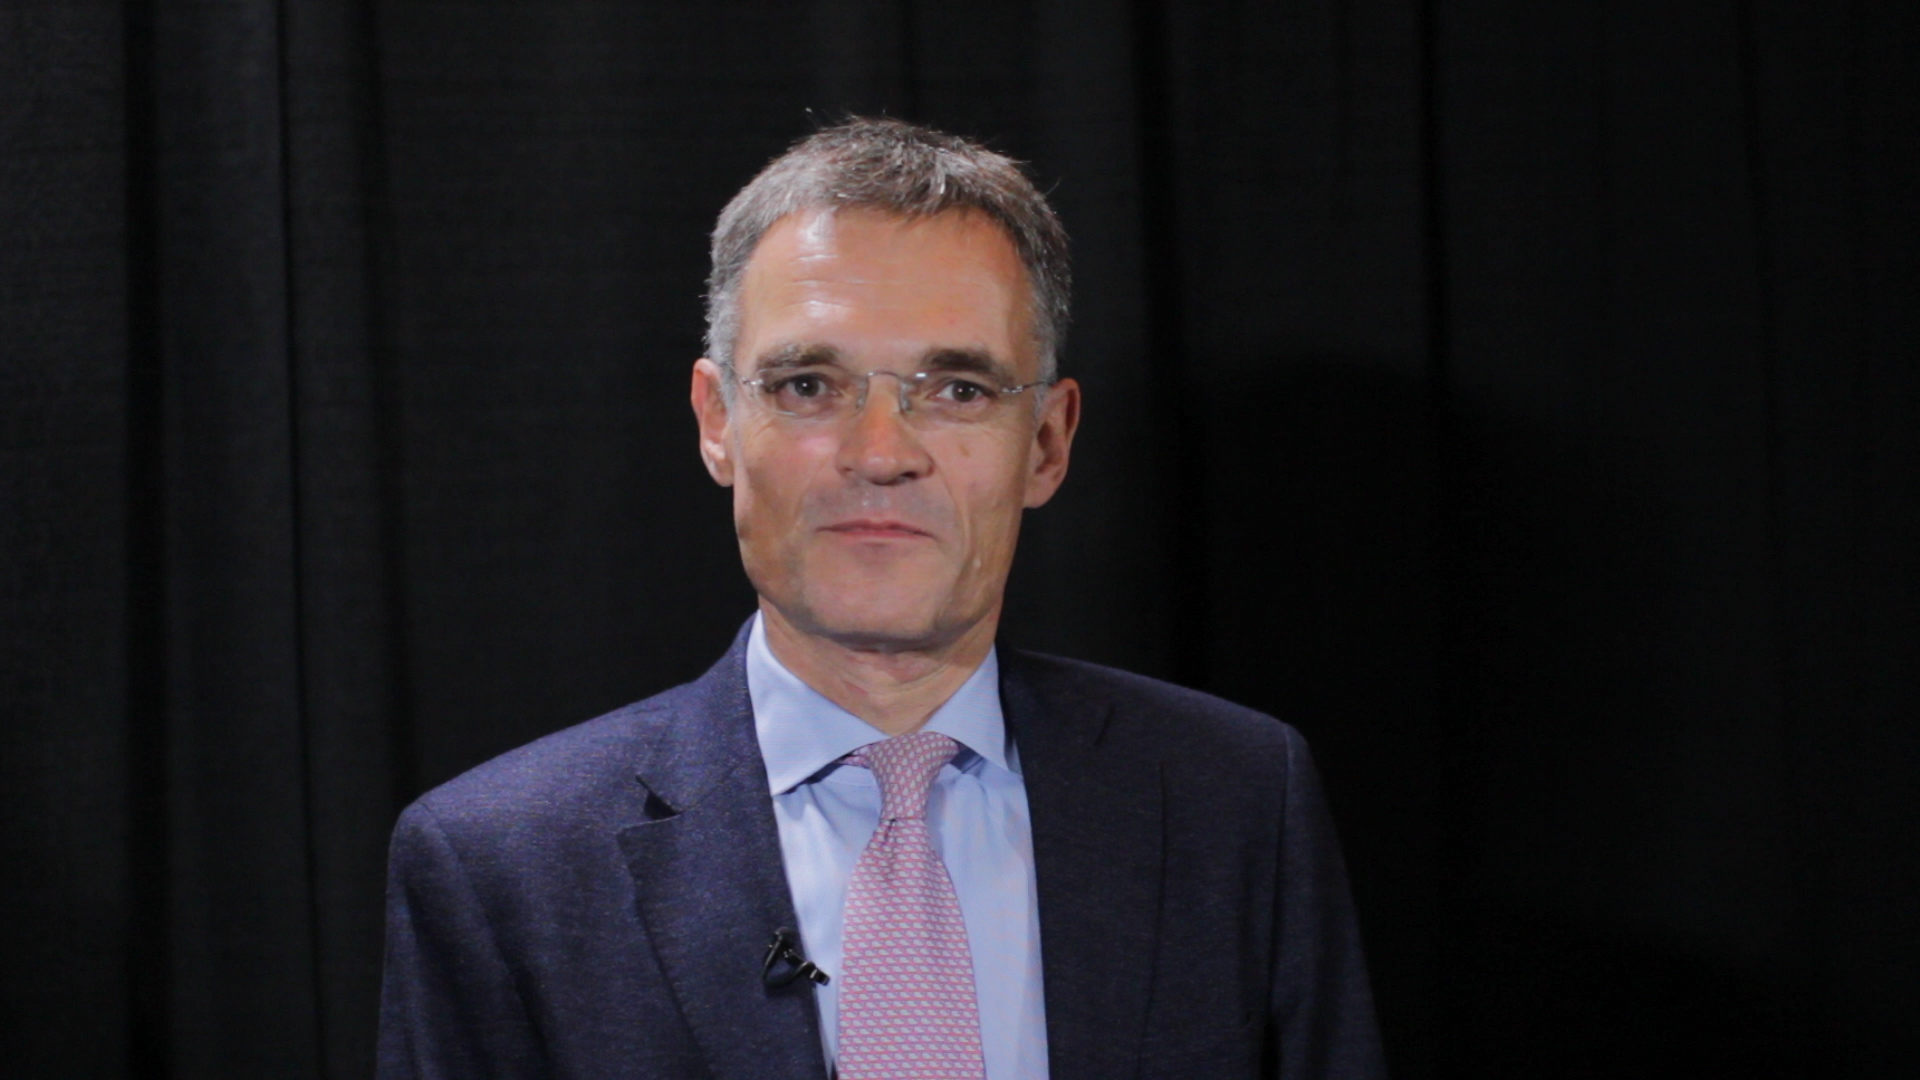 Video preview: KBA's Claus Bolza-Schünemann Bullish about Industry's Prospects